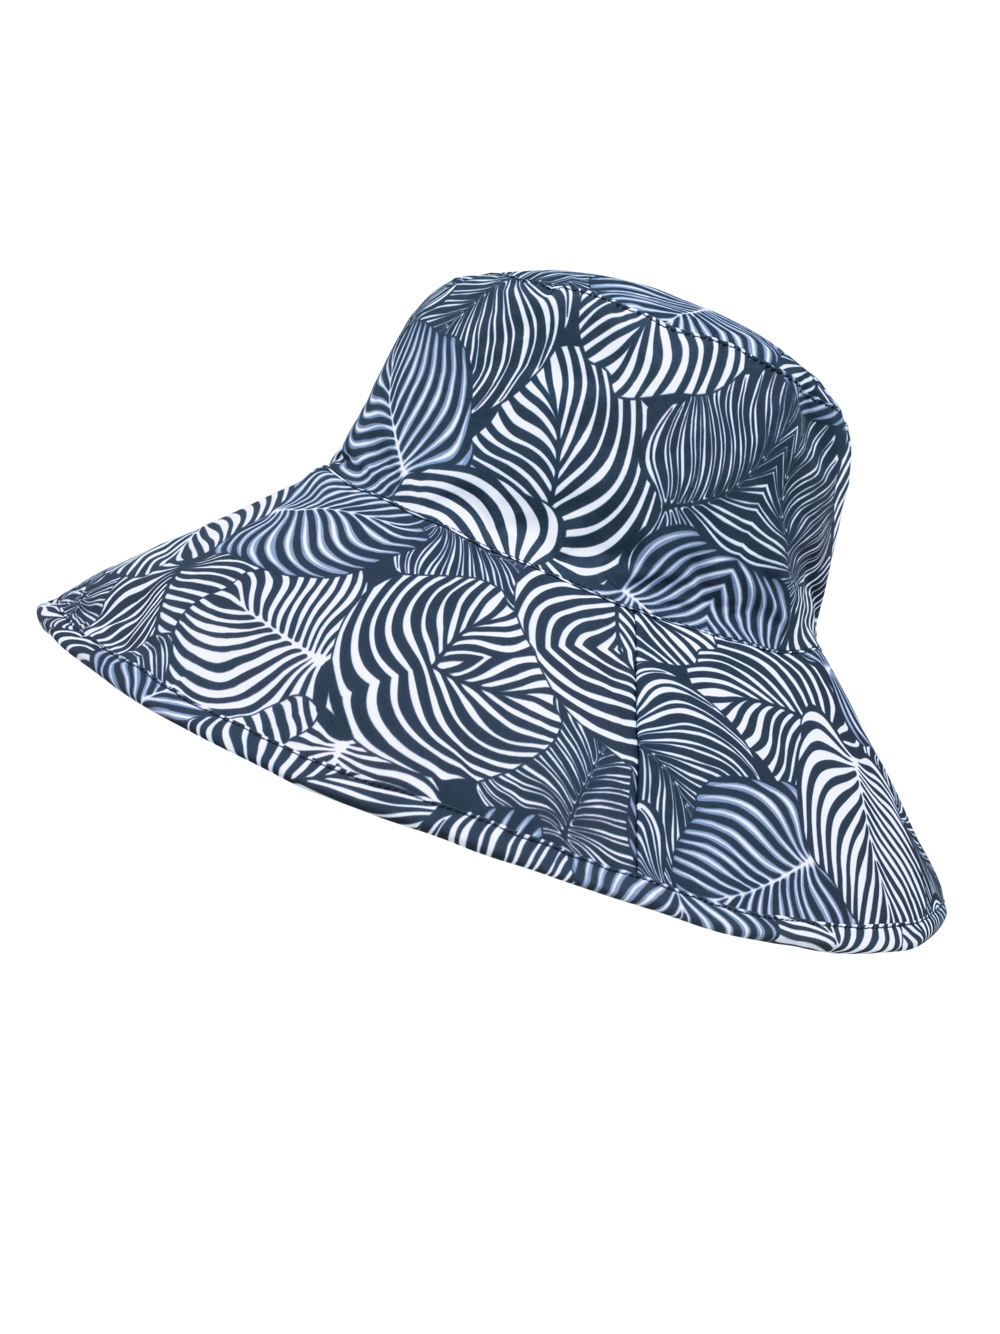 SunWay's Roll up wide brim Hat - Black and White